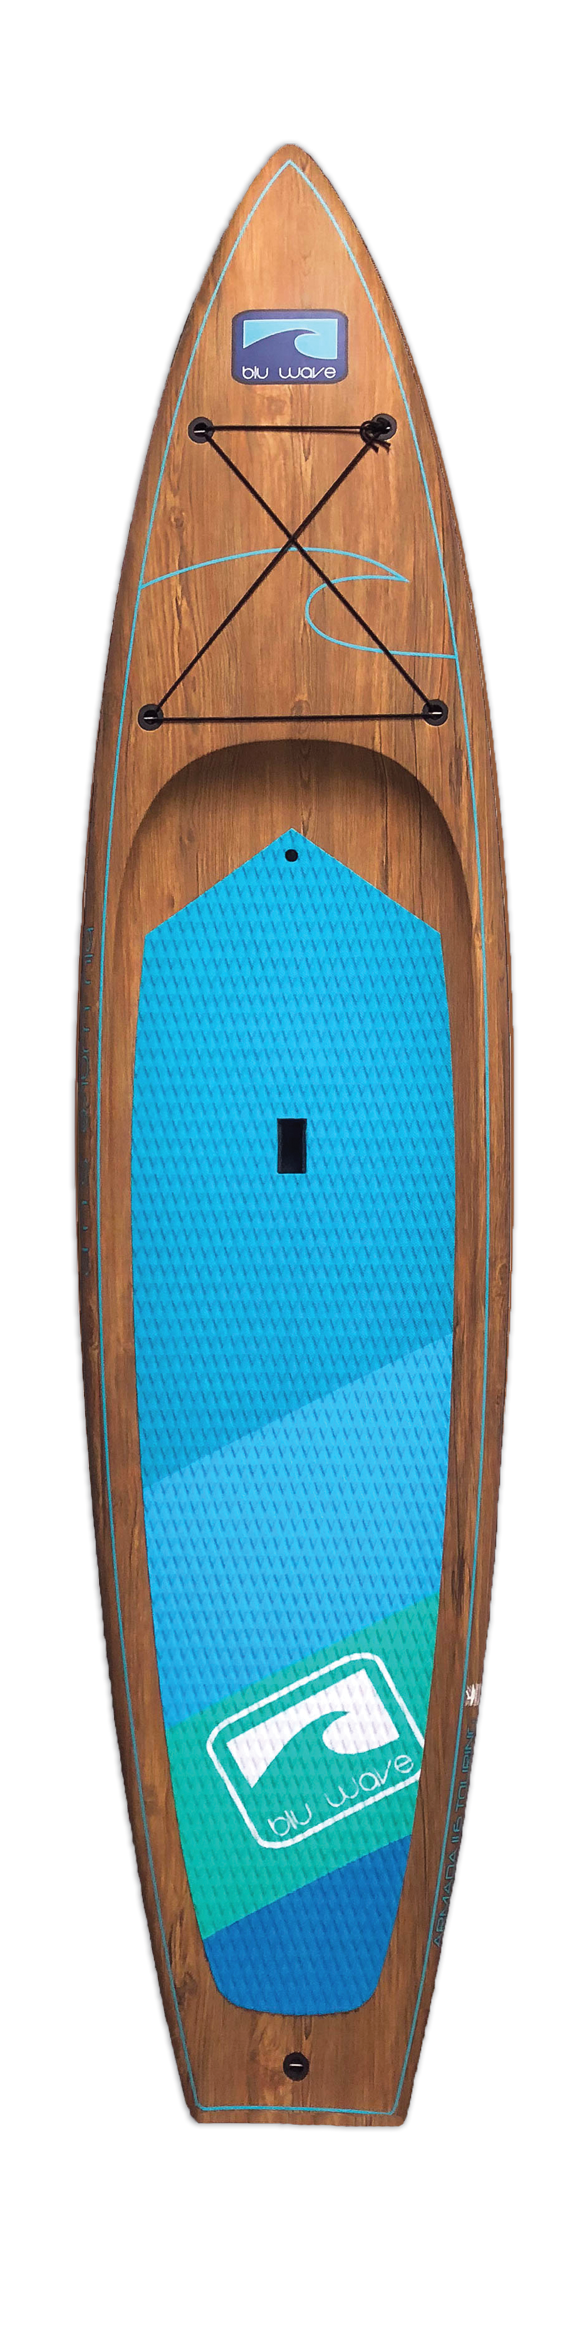 Paddleboards: Armada 11.6 Touring by Blu Wave SUP - Image 4609